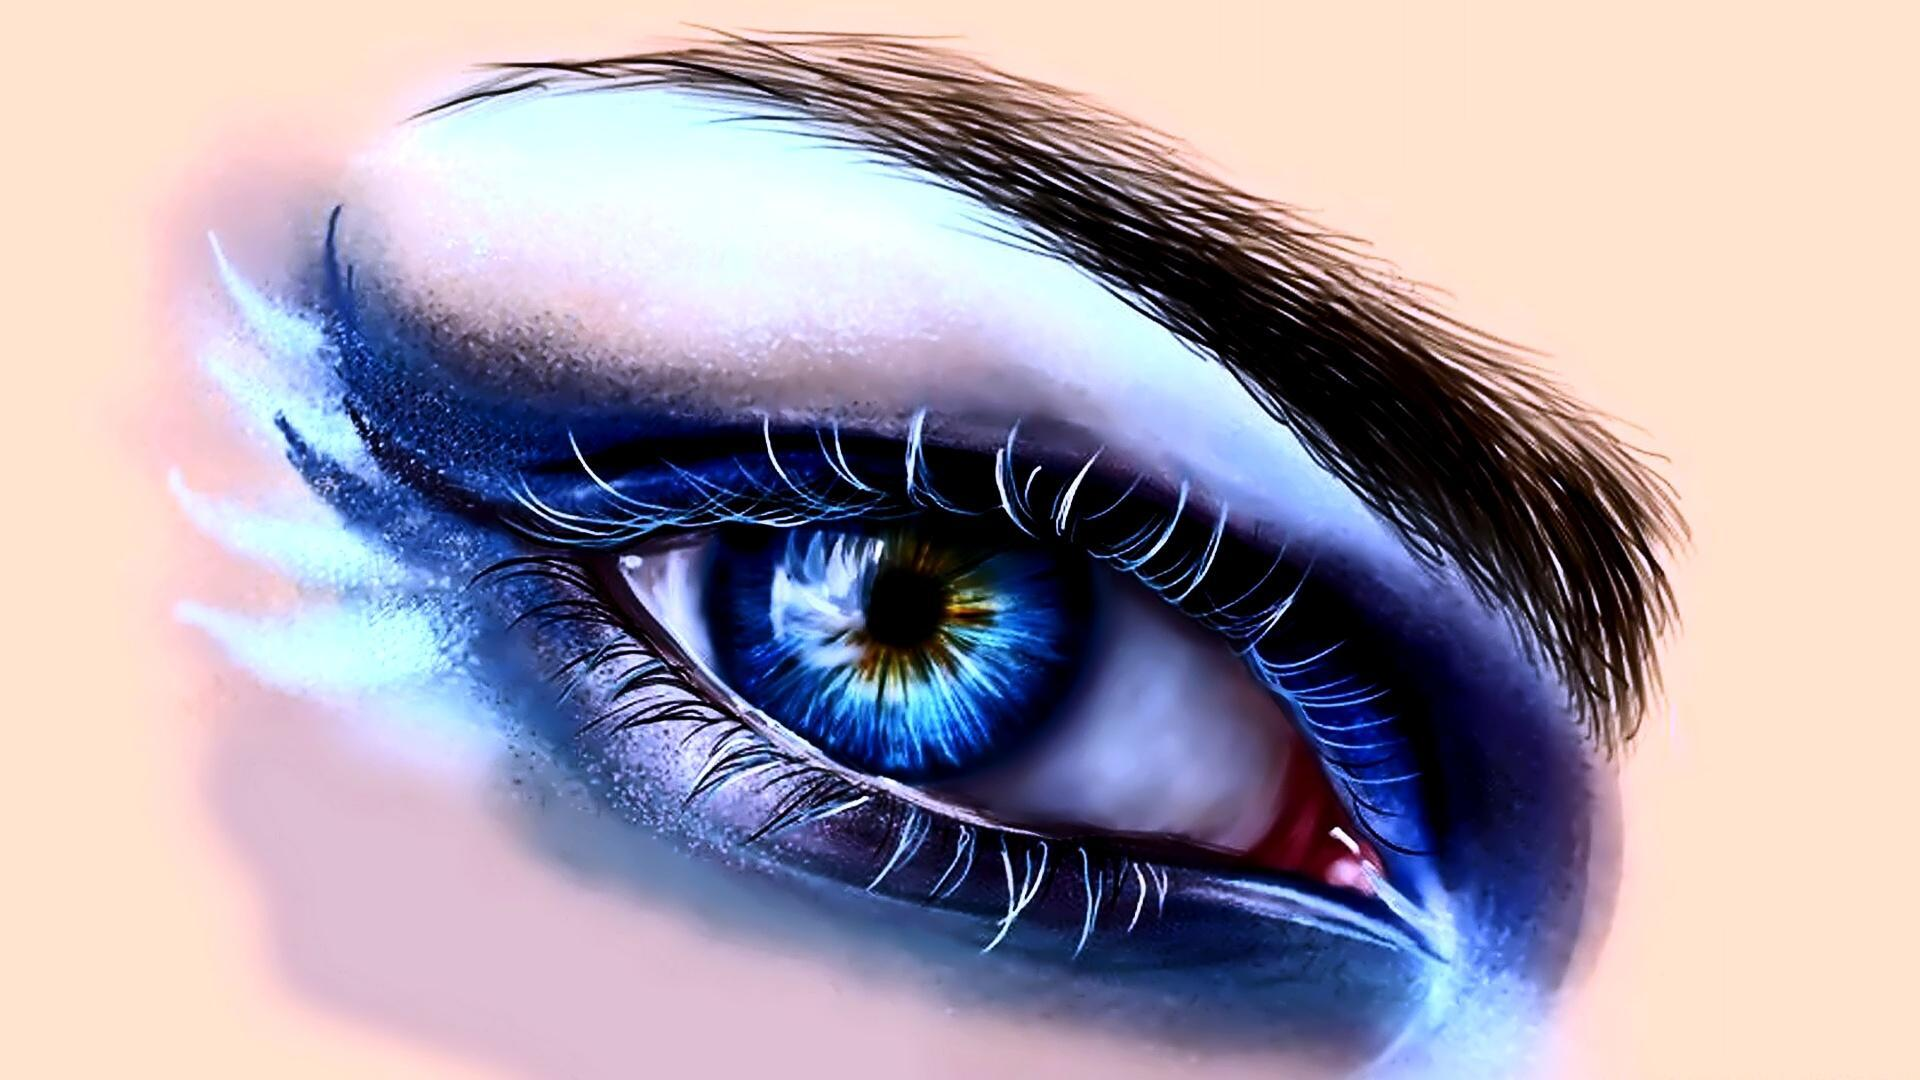 Hd wallpaper eyes - Wallpapers For Beautiful Eyes Wallpaper For Desktop